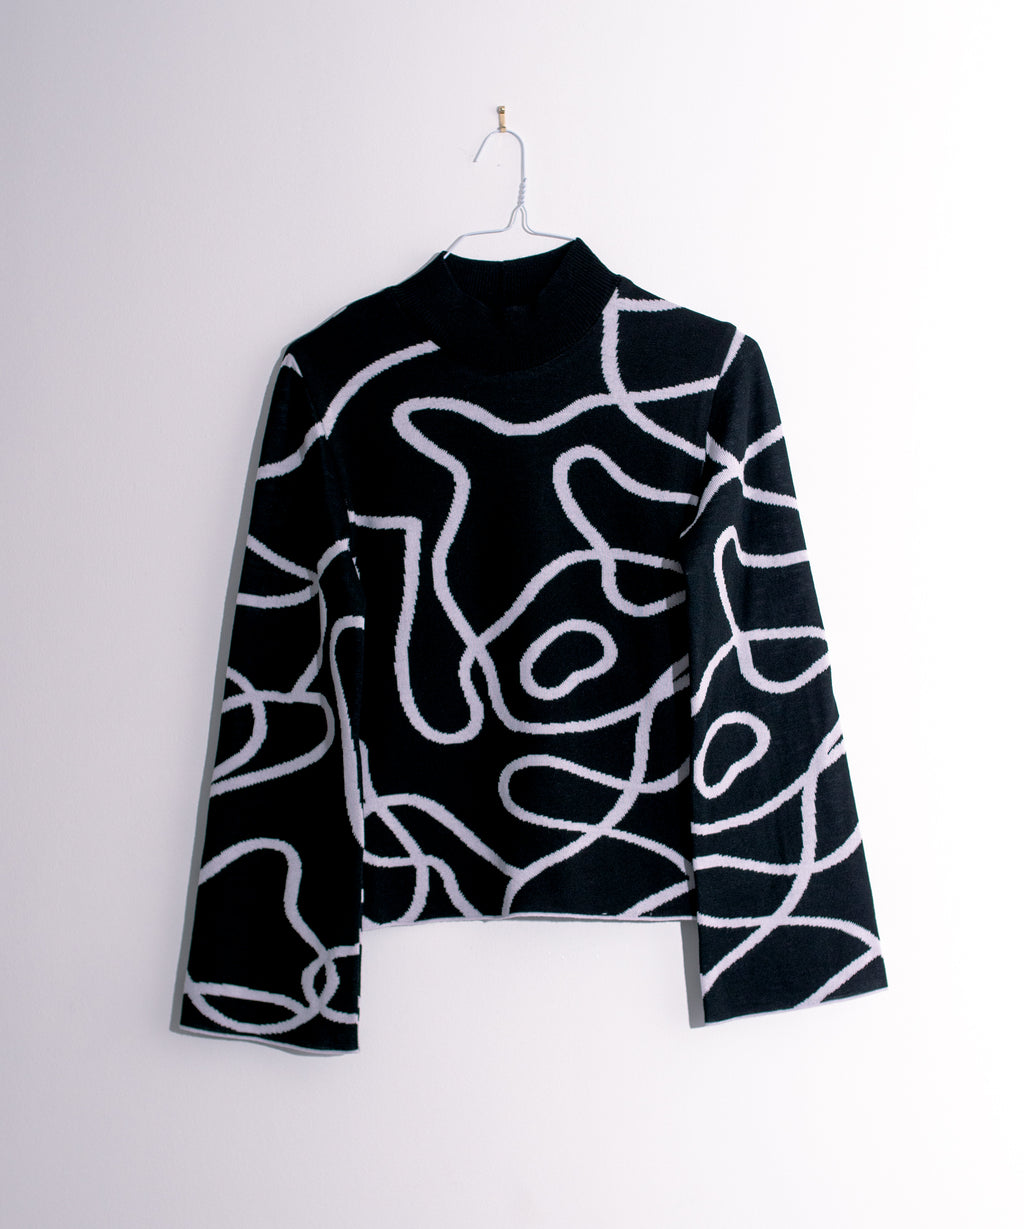 Reversible Jacquard Knit Jumper Black/White